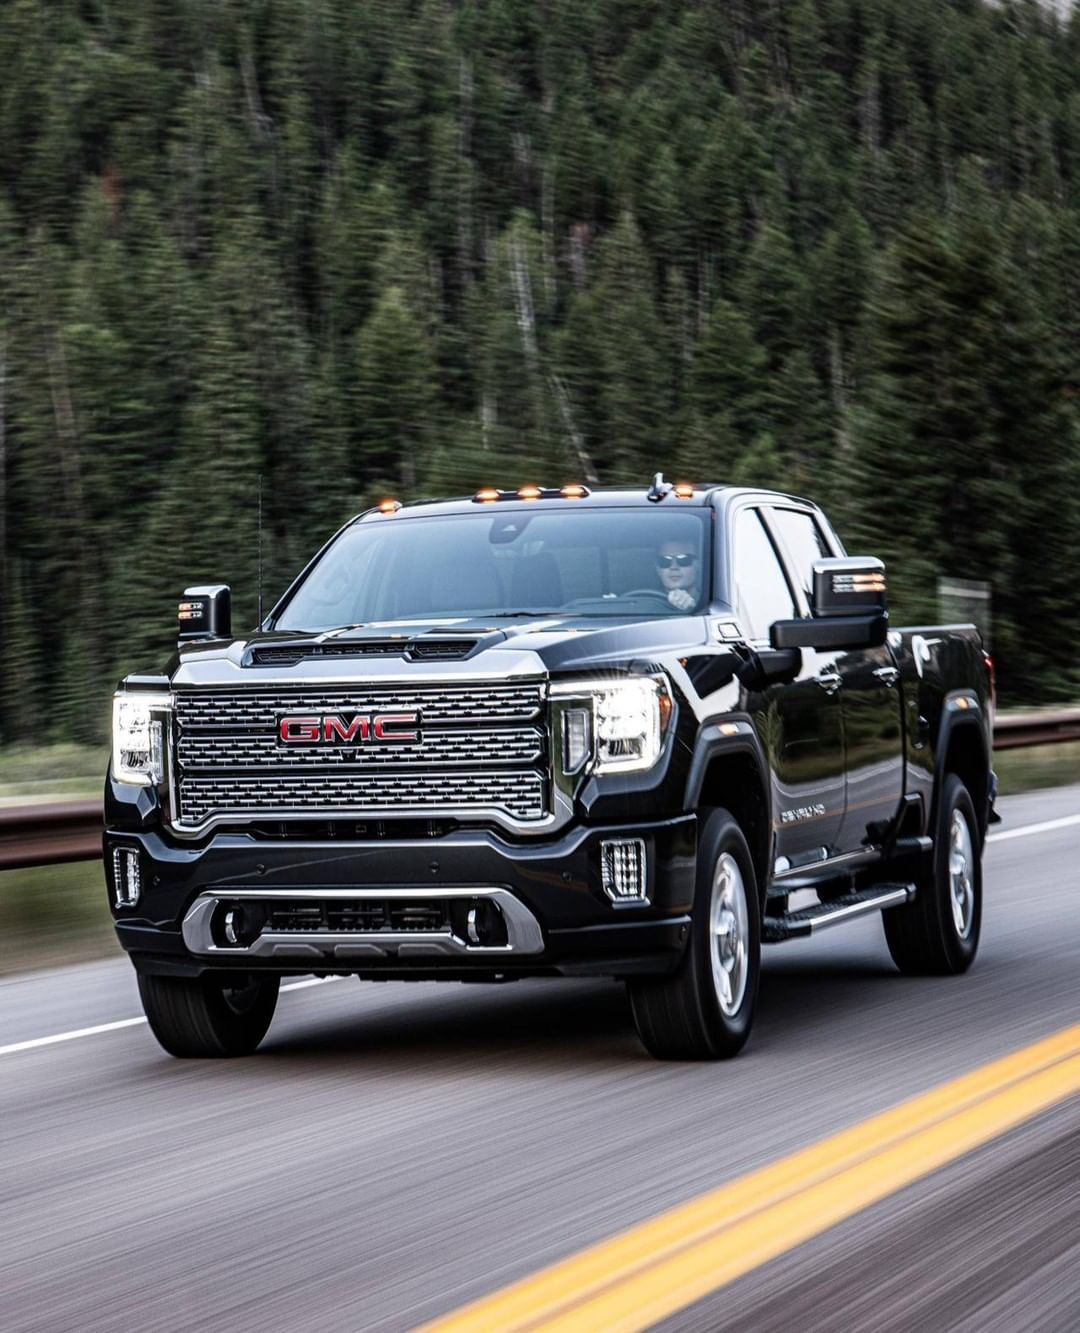 Motortrend On Instagram We Drive The 2020 Gmc Sierra Hd 2500 And 3500 Models Including The New Off Road Oriented At4 Trim Head Ov Gmc Sierra Gmc Gmc Trucks